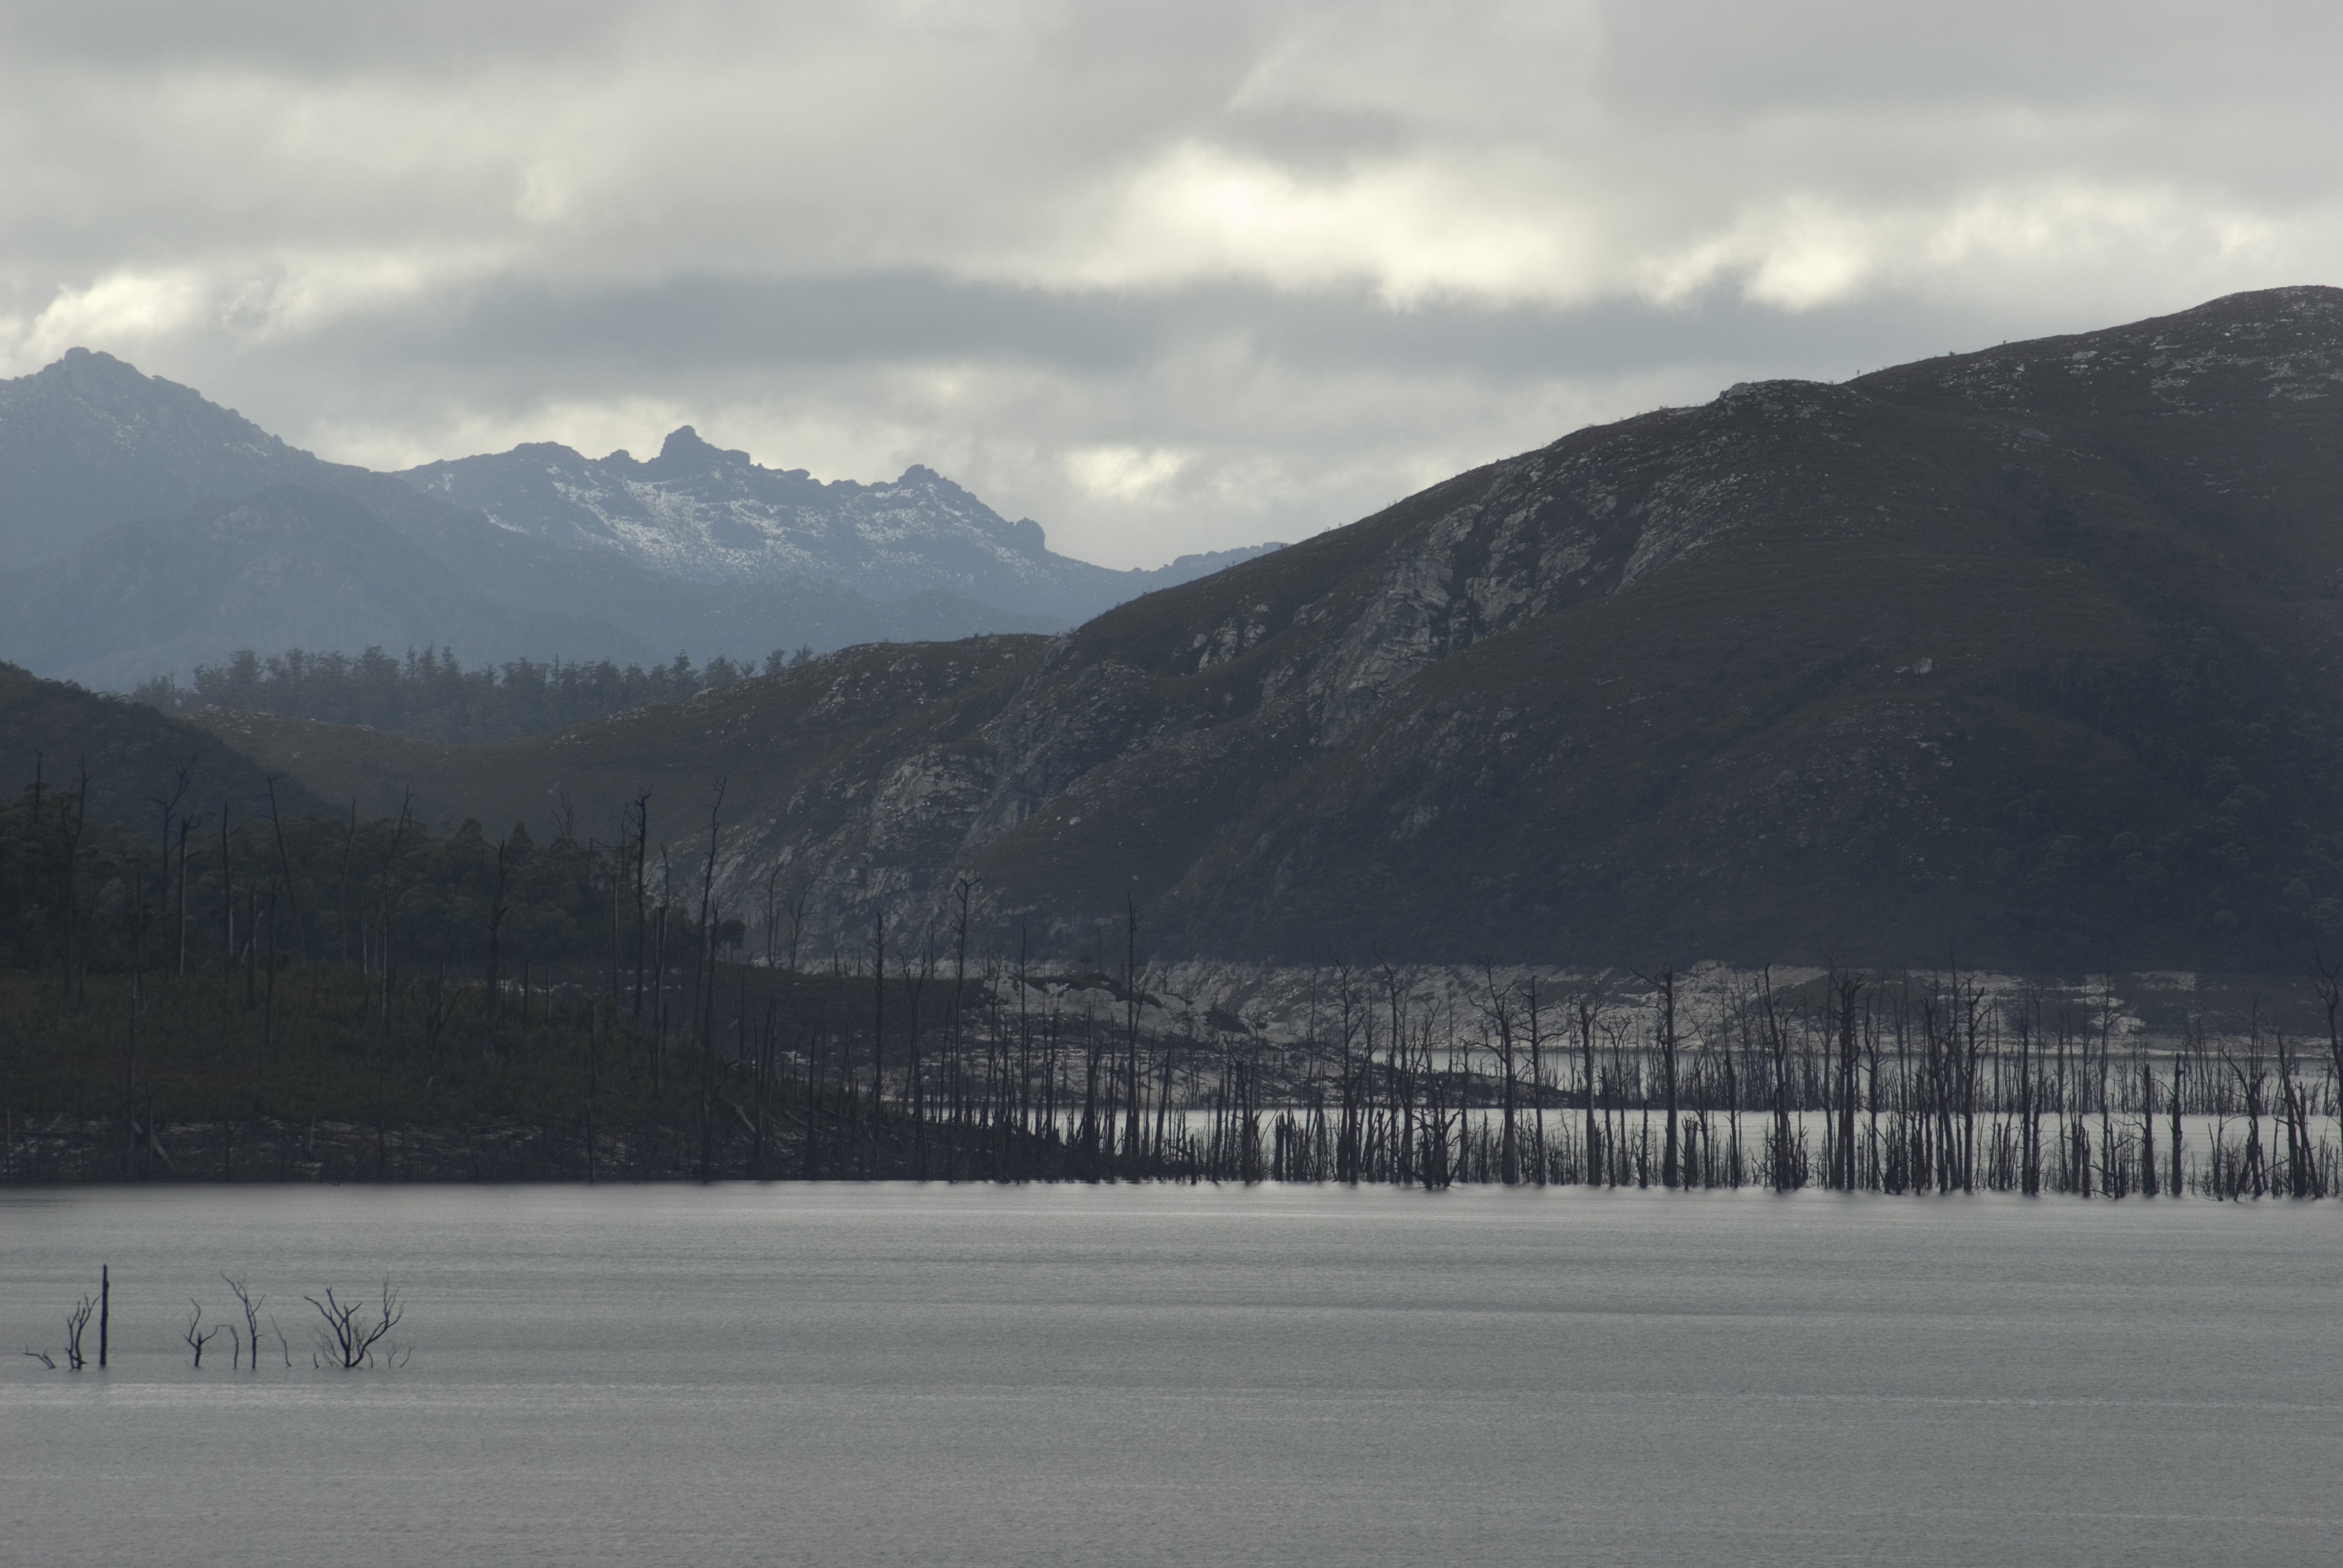 bleak landscape in lake gordon, created by the damming of the gordon river by the gordon dam hydro electric project